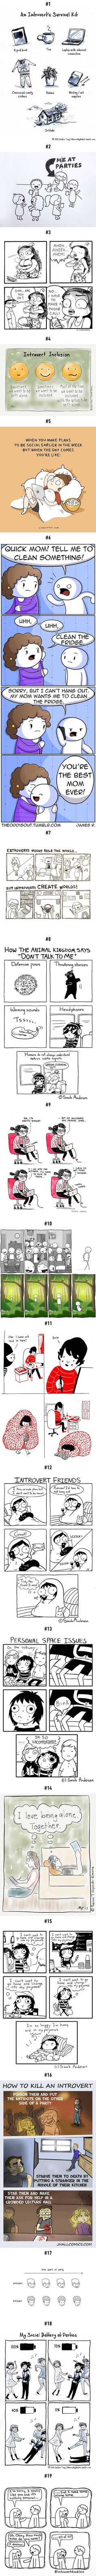 19 Comics Only Introverts Will Understand - 9GAG